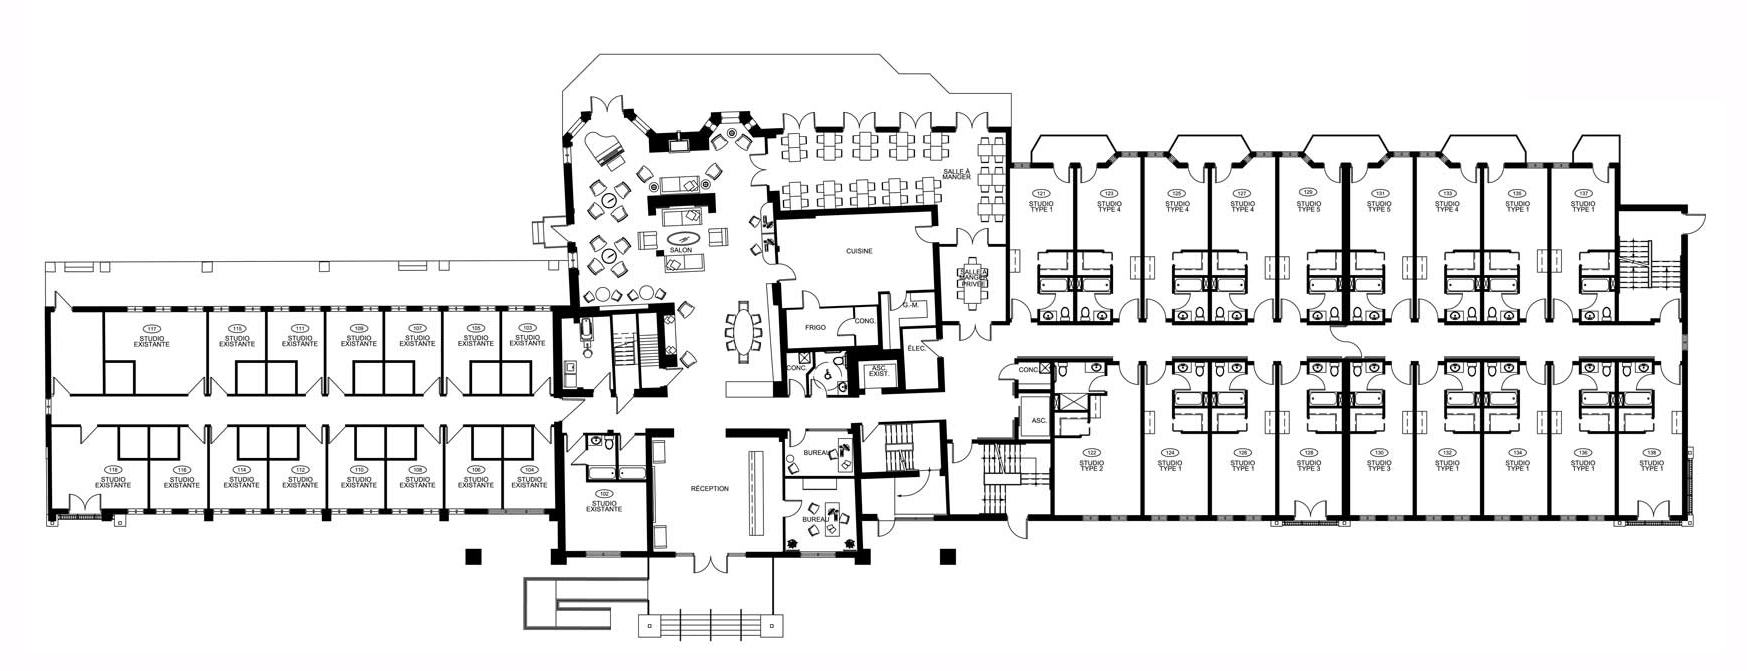 Location plan manoir des les for Conception de plans de manoir